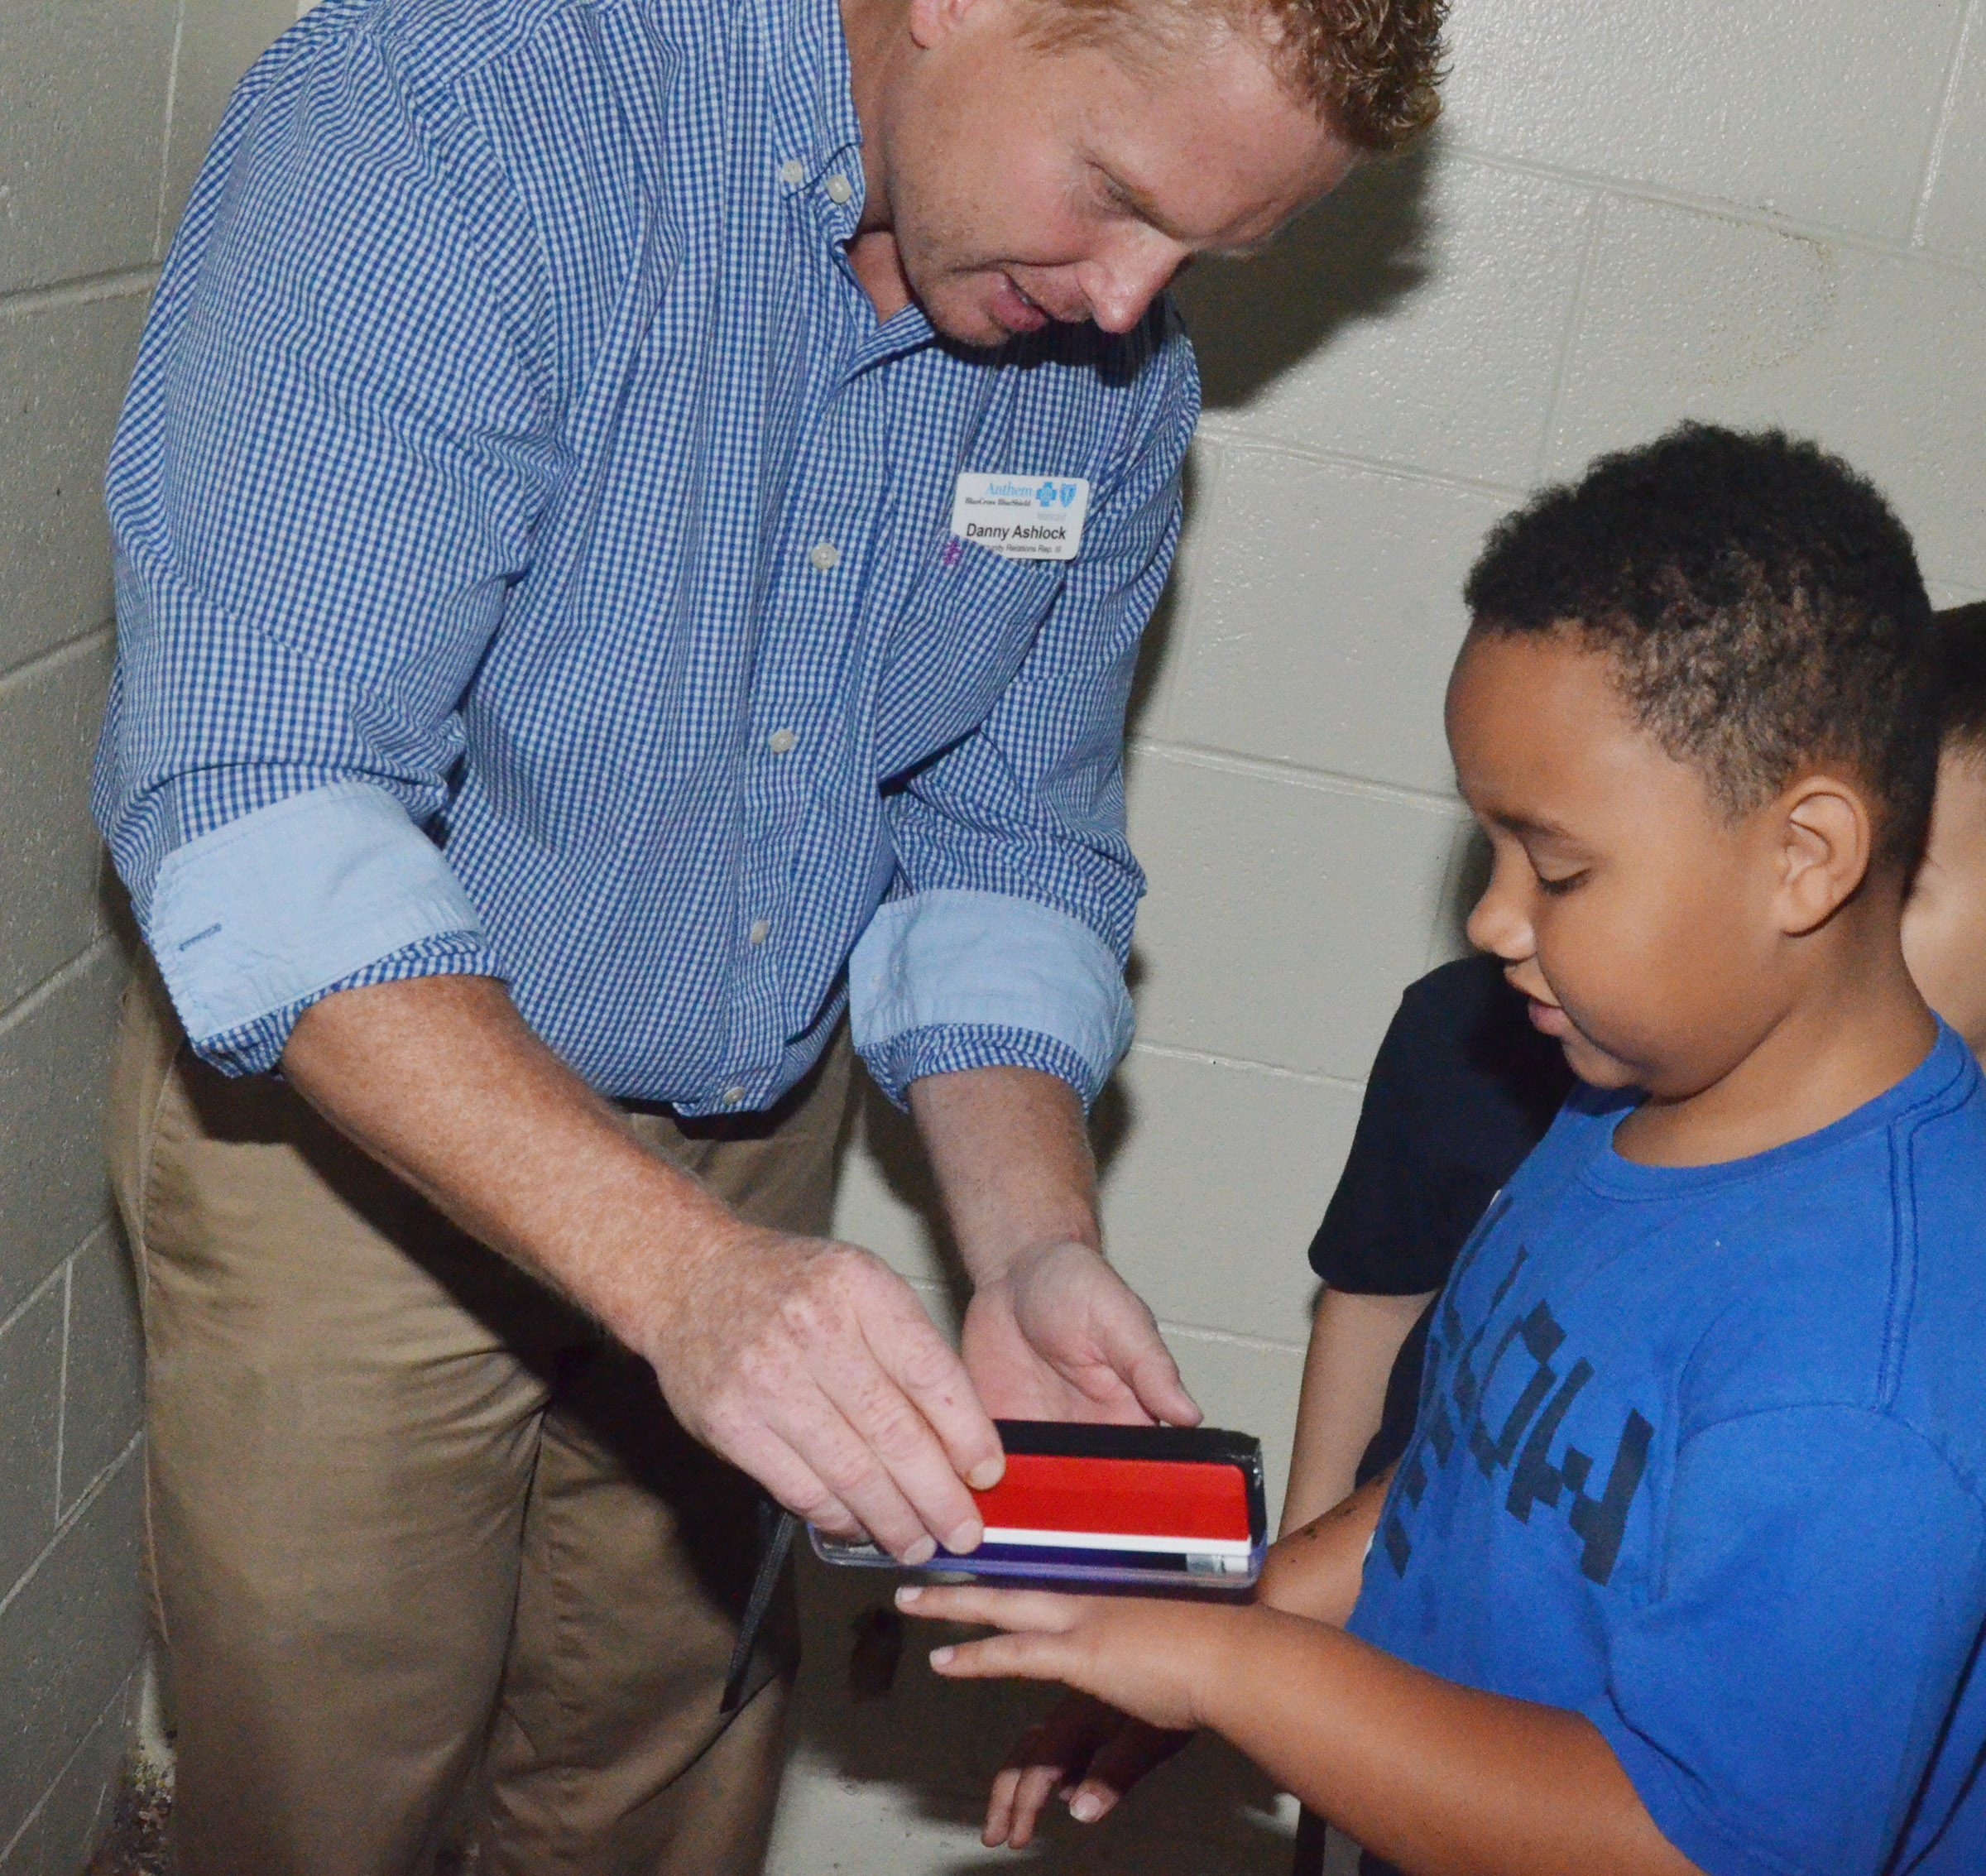 Danny Ashlock, a representative from the Anthem insurance company, sees how well first-grader Justin Walls washed his hands.